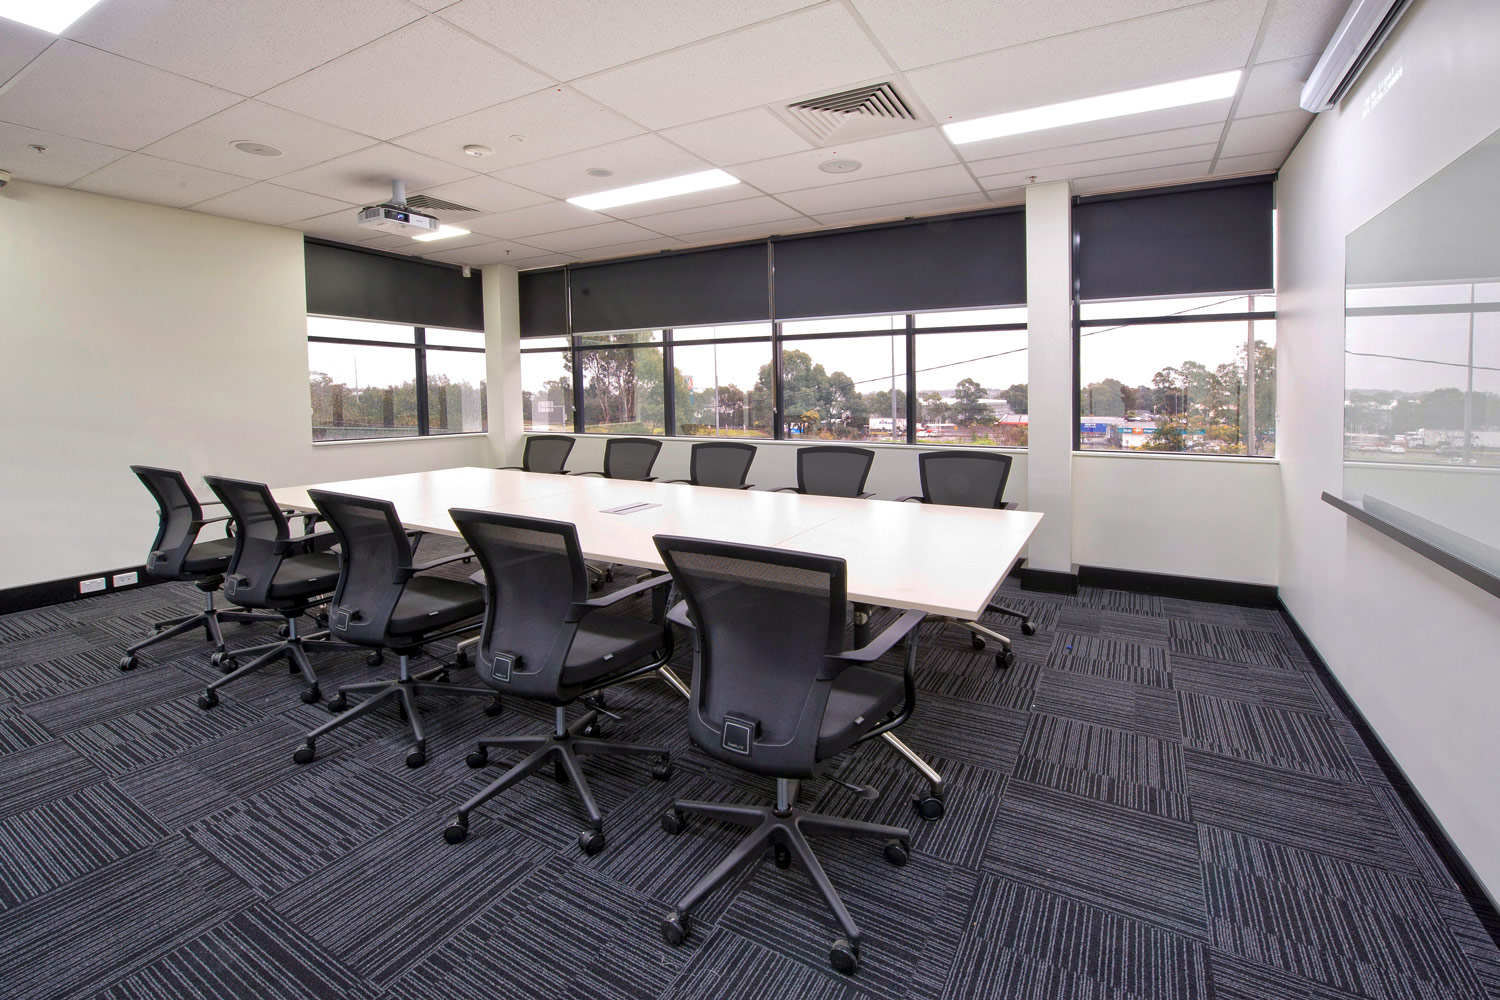 Flip Table and Tess conference room chairs